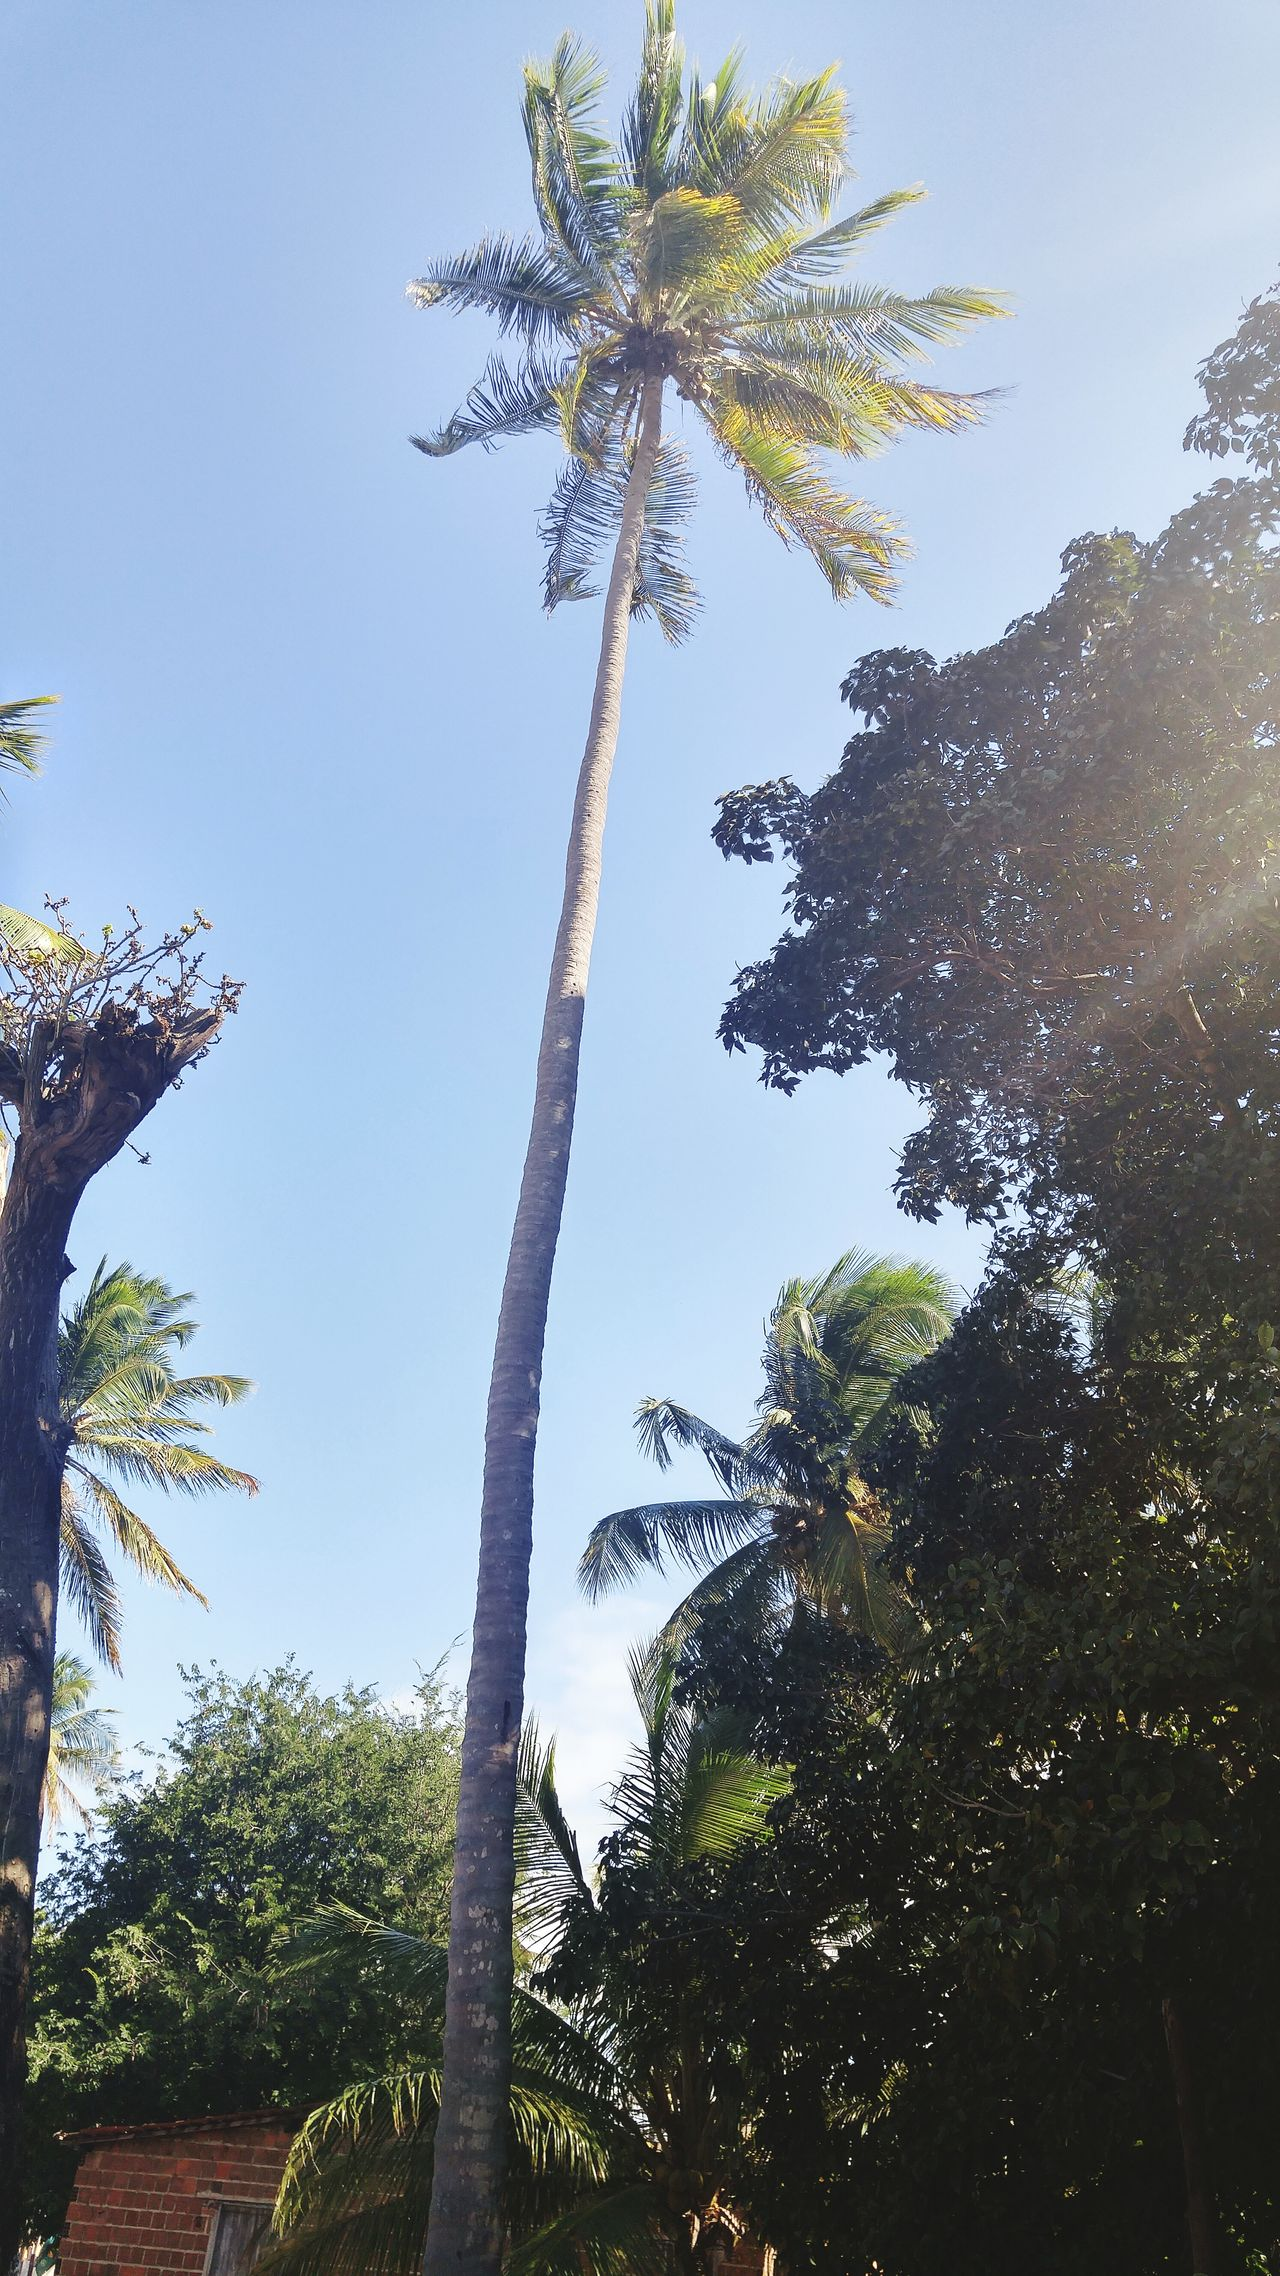 Tree Growth Low Angle View Palm Tree Tranquil Scene Scenics Clear Sky Tree Trunk Tranquility Tall - High Nature Beauty In Nature Blue Sky Day Non-urban Scene Branch Outdoors Solitude Tall